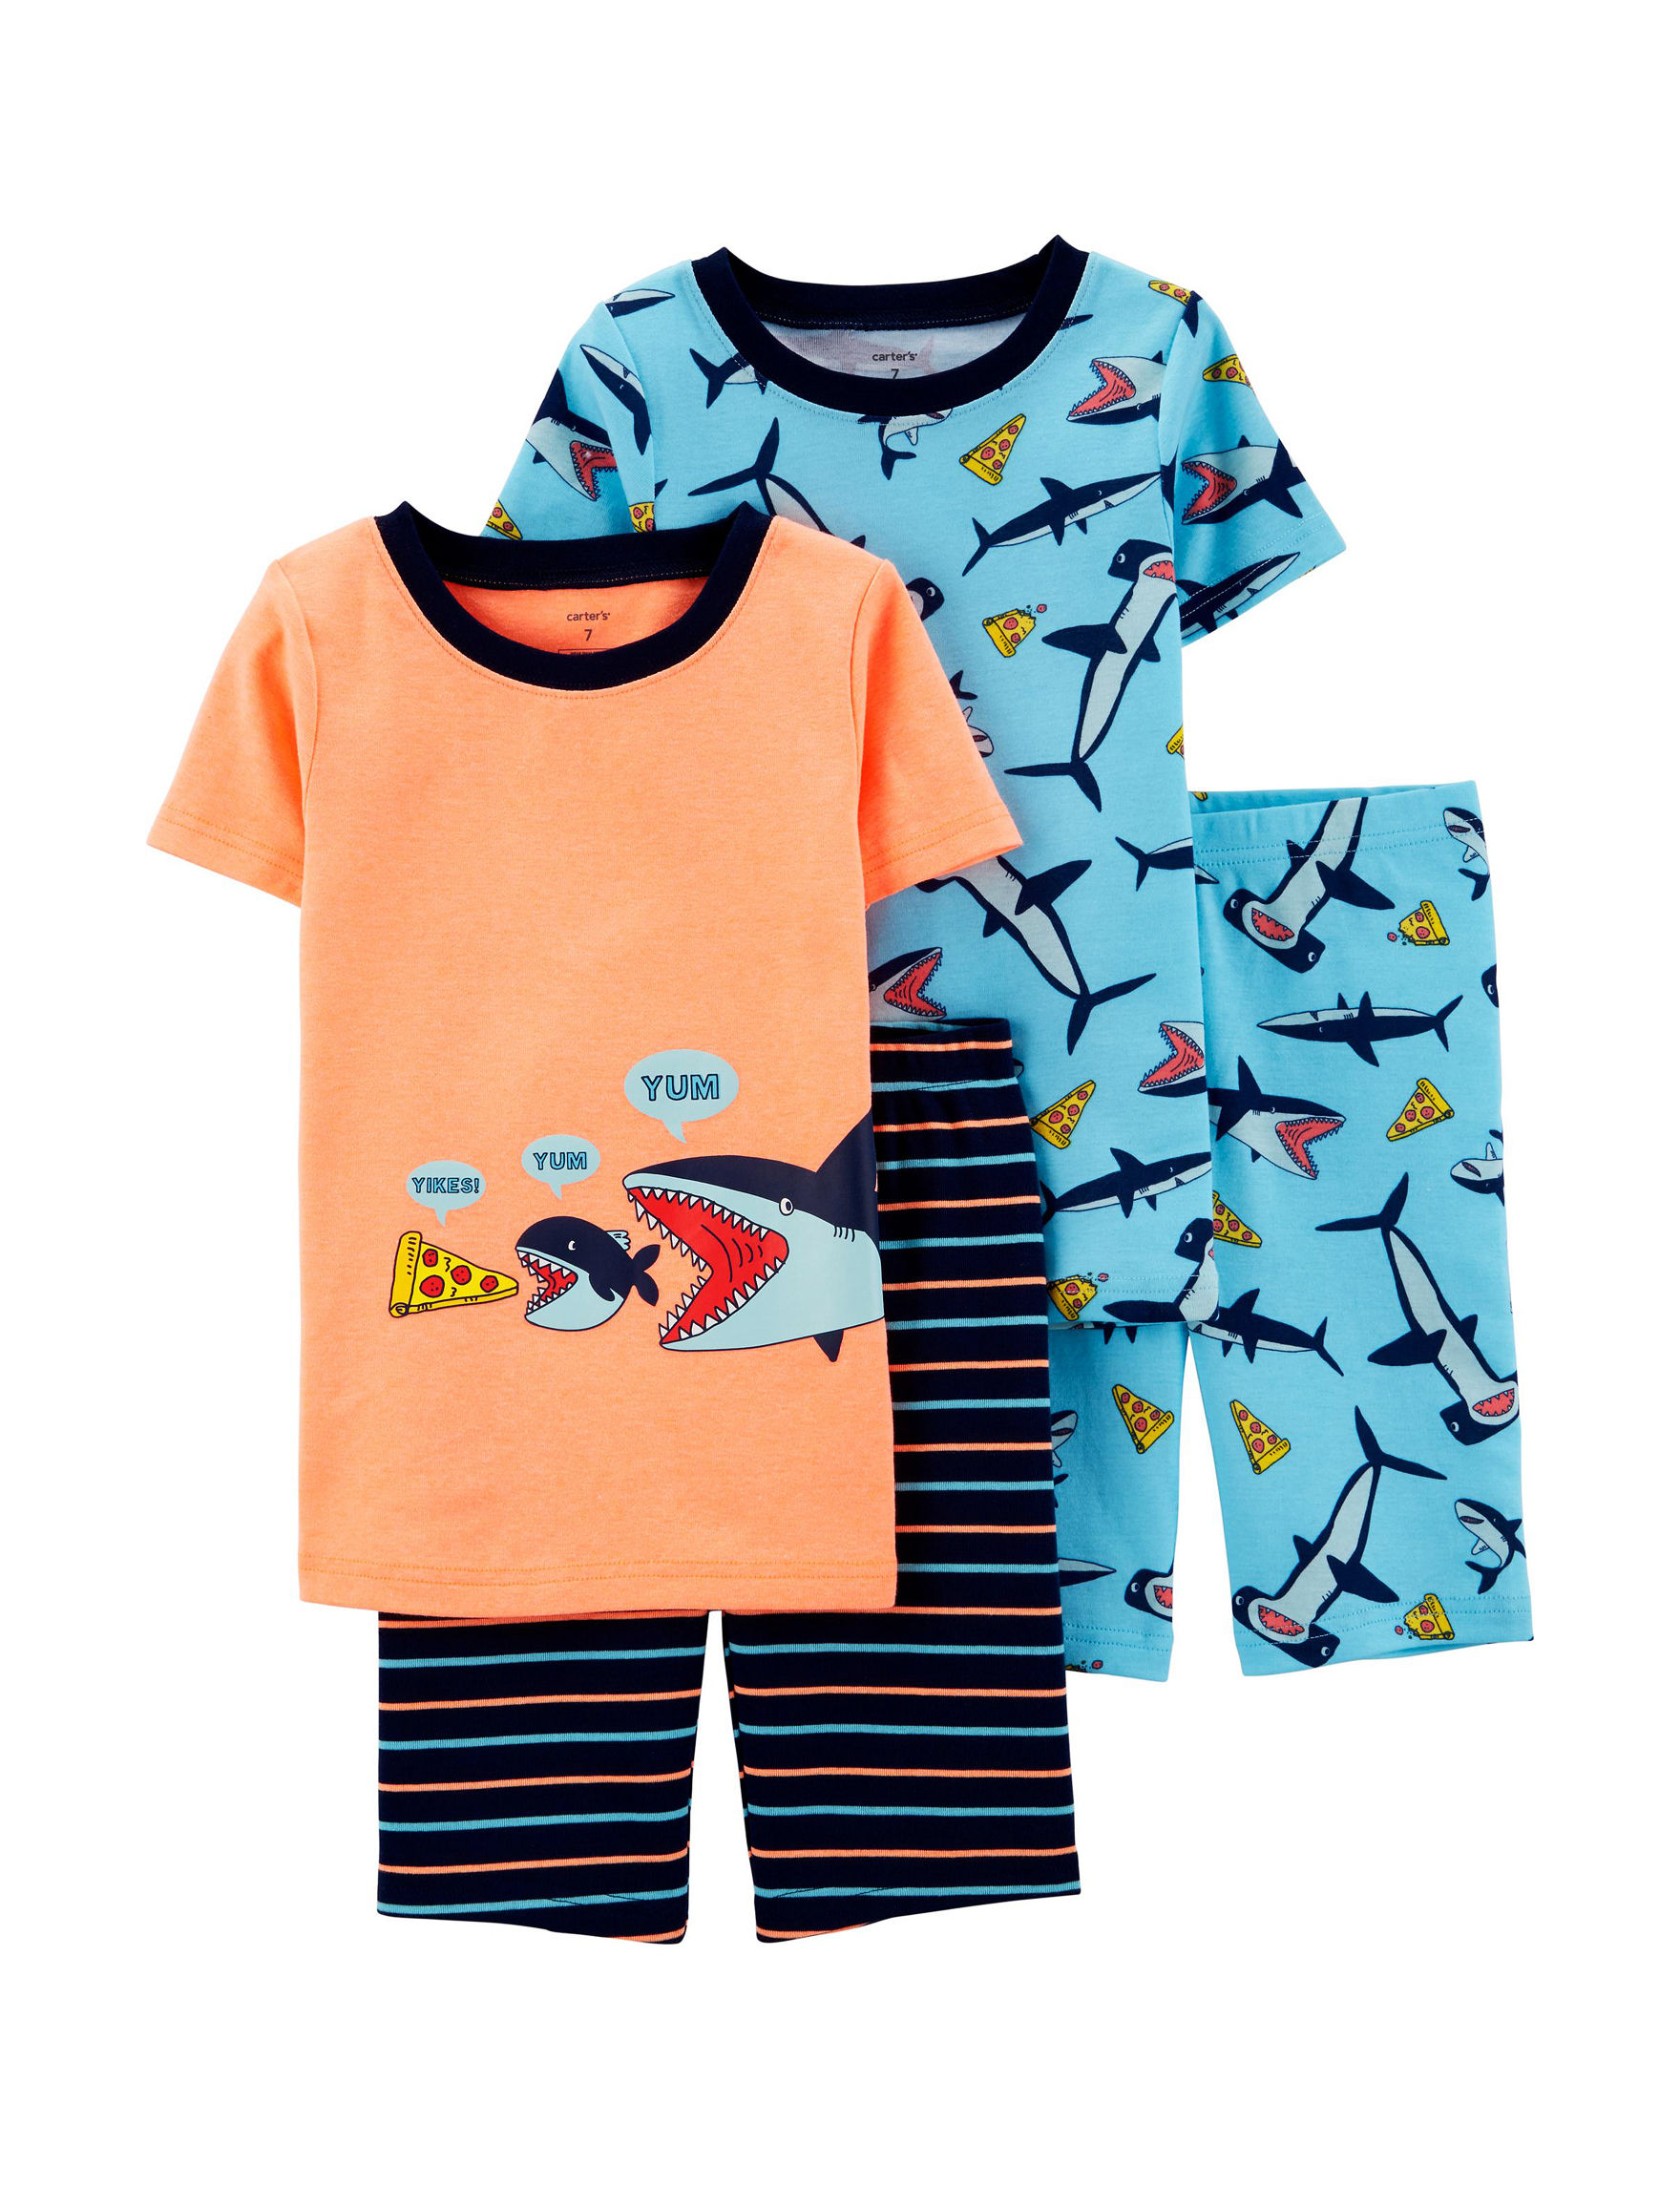 Carter's Orange / Blue Pajama Sets